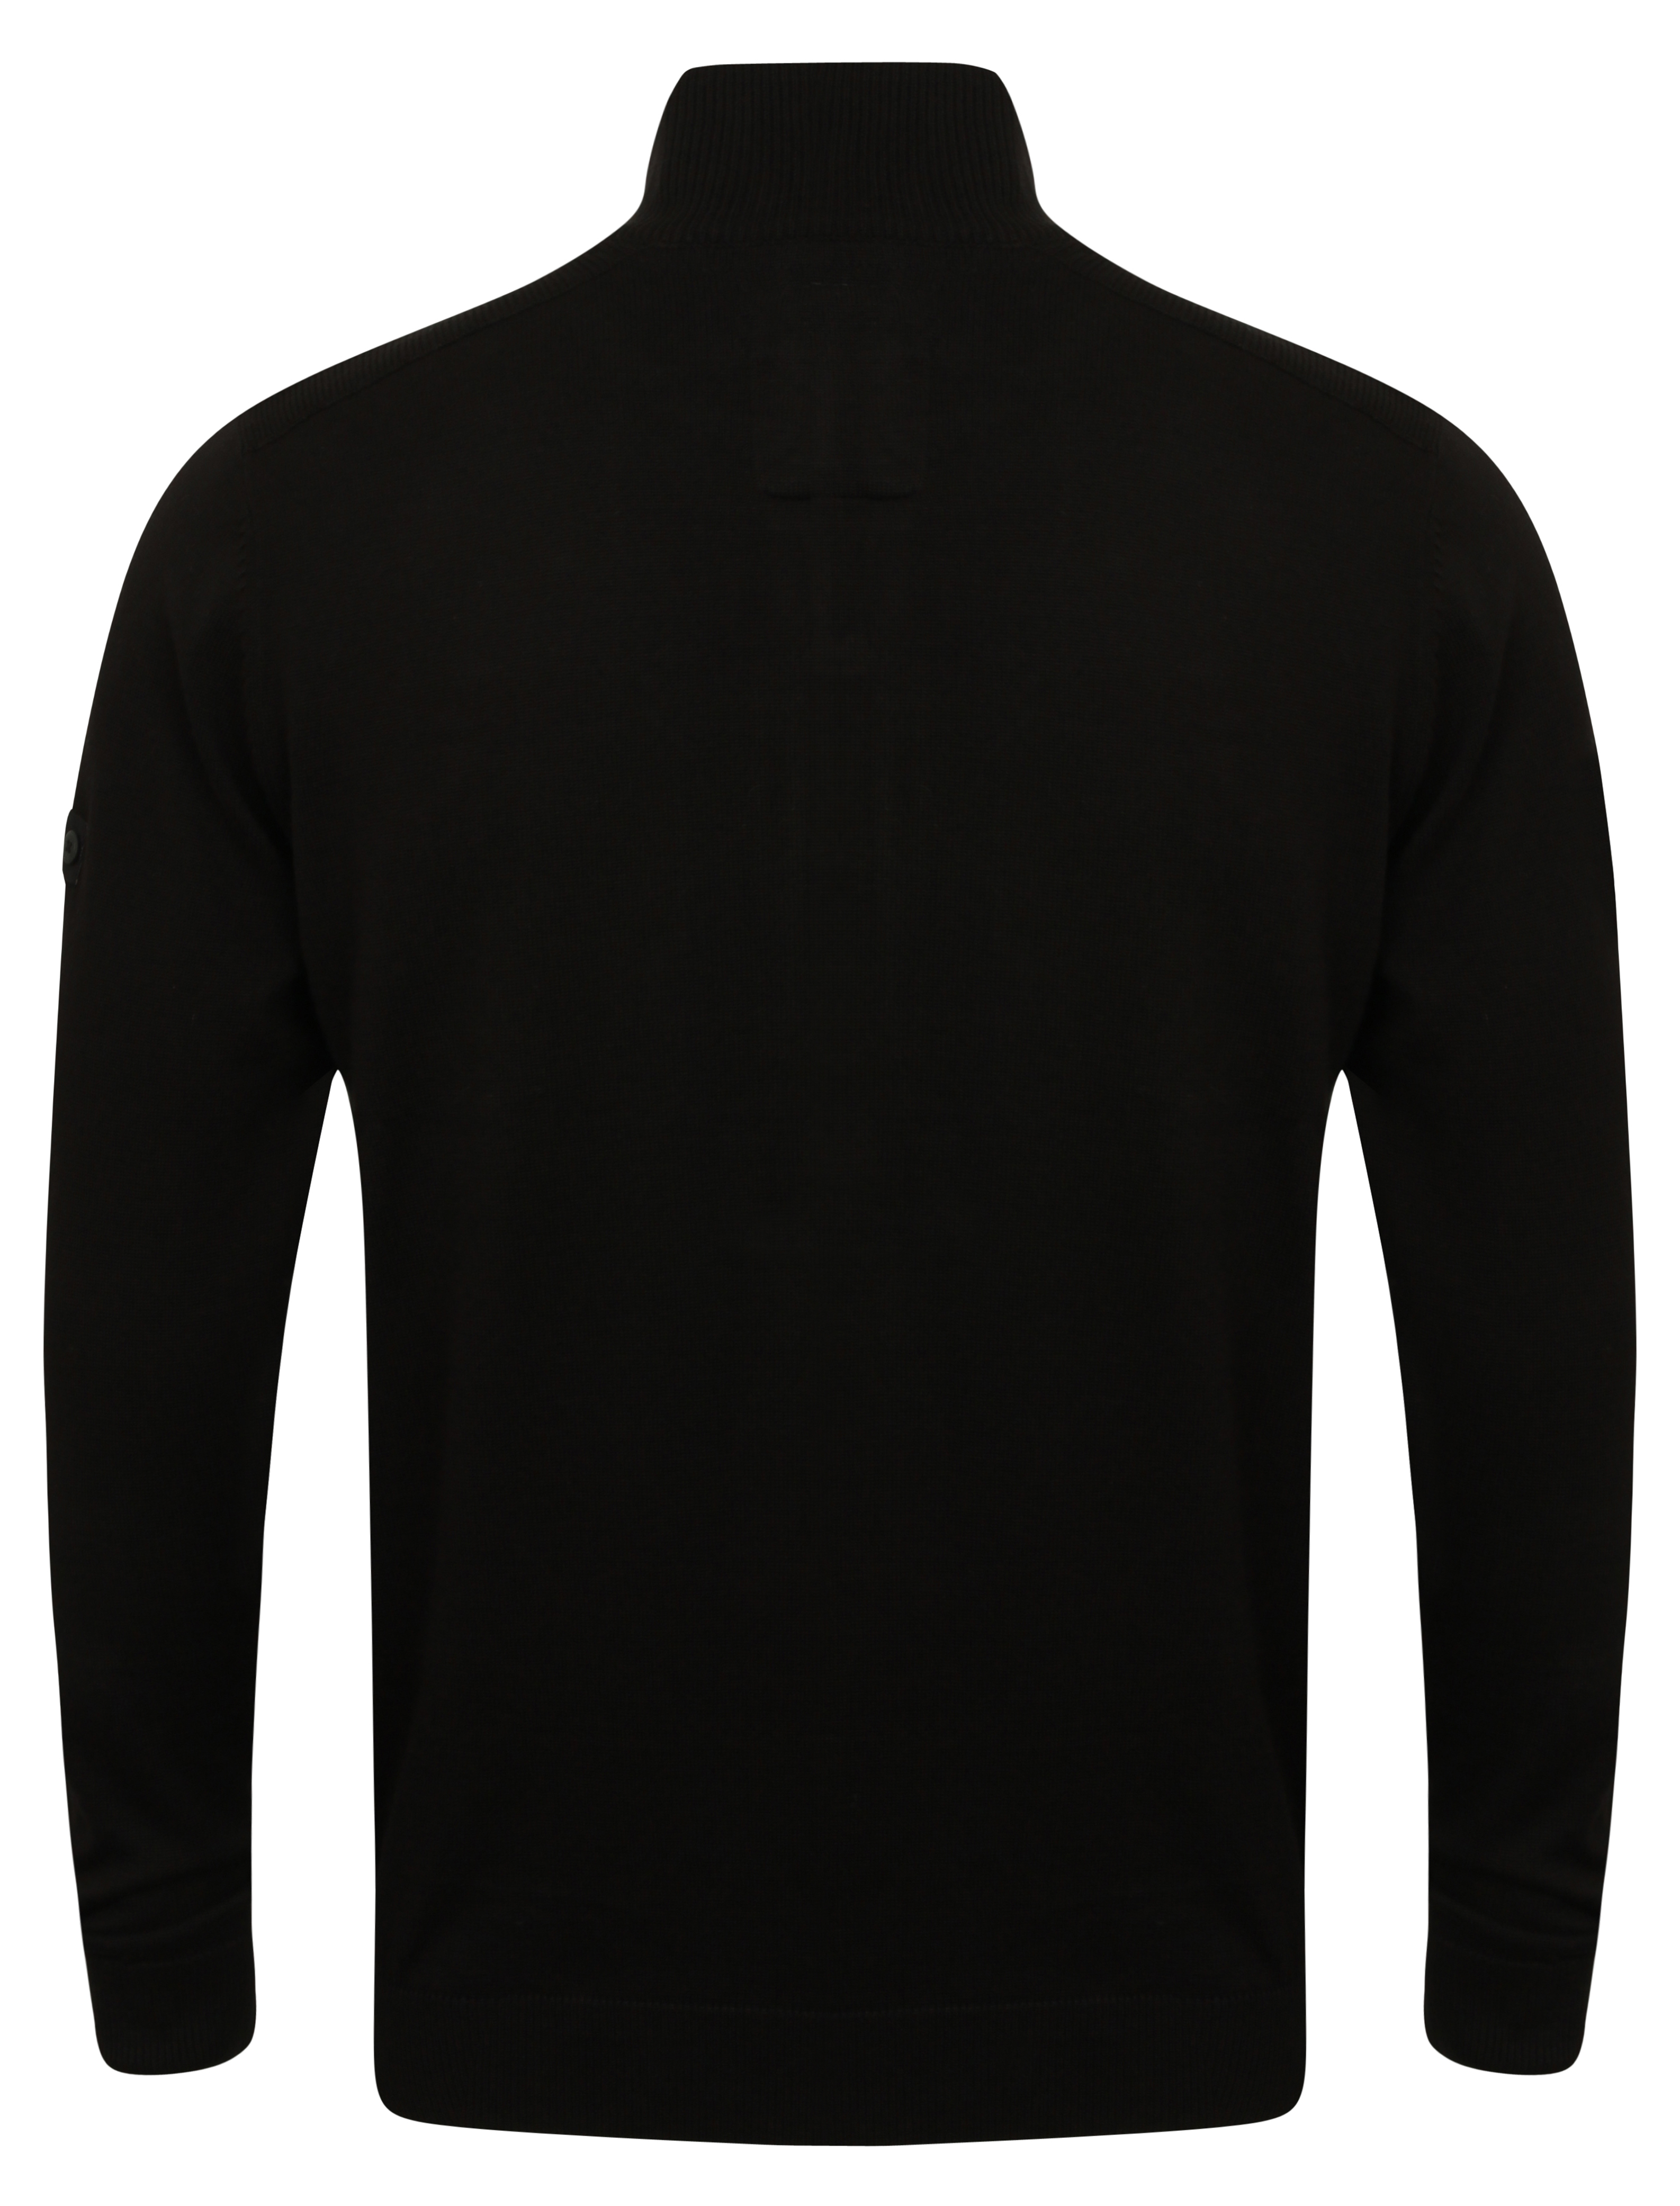 Mens-Dissident-Cardigan-Knitted-Jumper-Sweater-Top-Funnel-Neck-Casual-Winter-New thumbnail 3